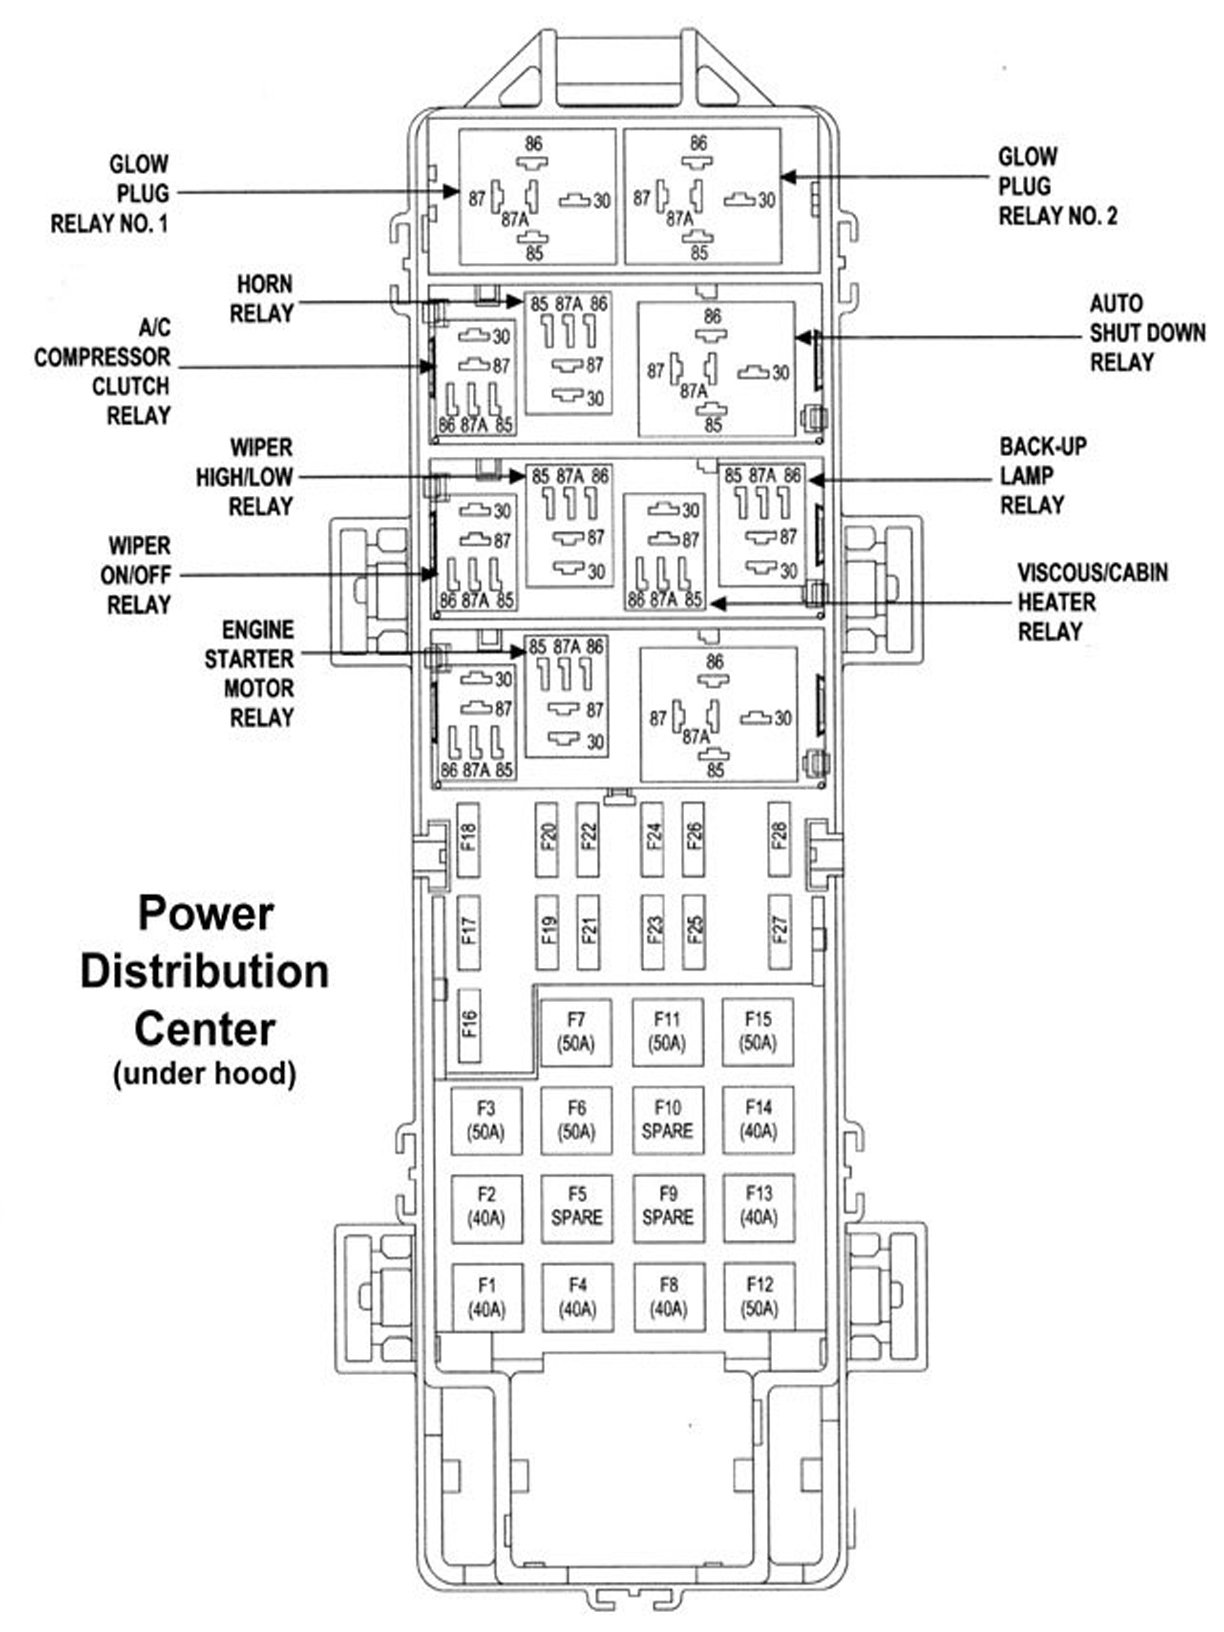 1999 Jeep Grand Cherokee Driver Door Wiring Diagram : Jeep grand cherokee wj to fuse box diagram